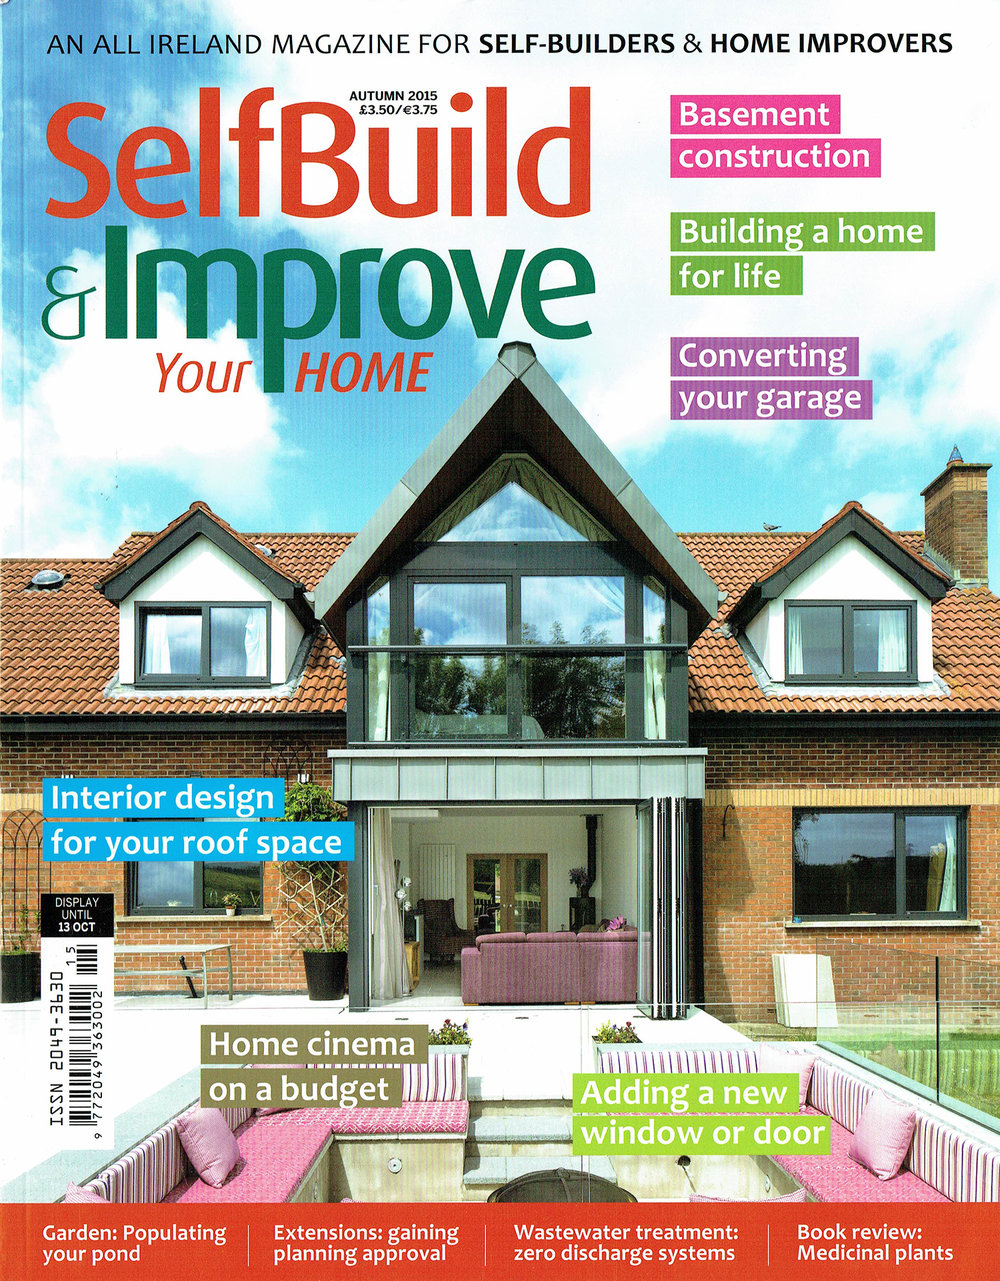 Wilson McMullen Architects House extension in Doagh features on Front Cover of Ireland's Premier self build magazine